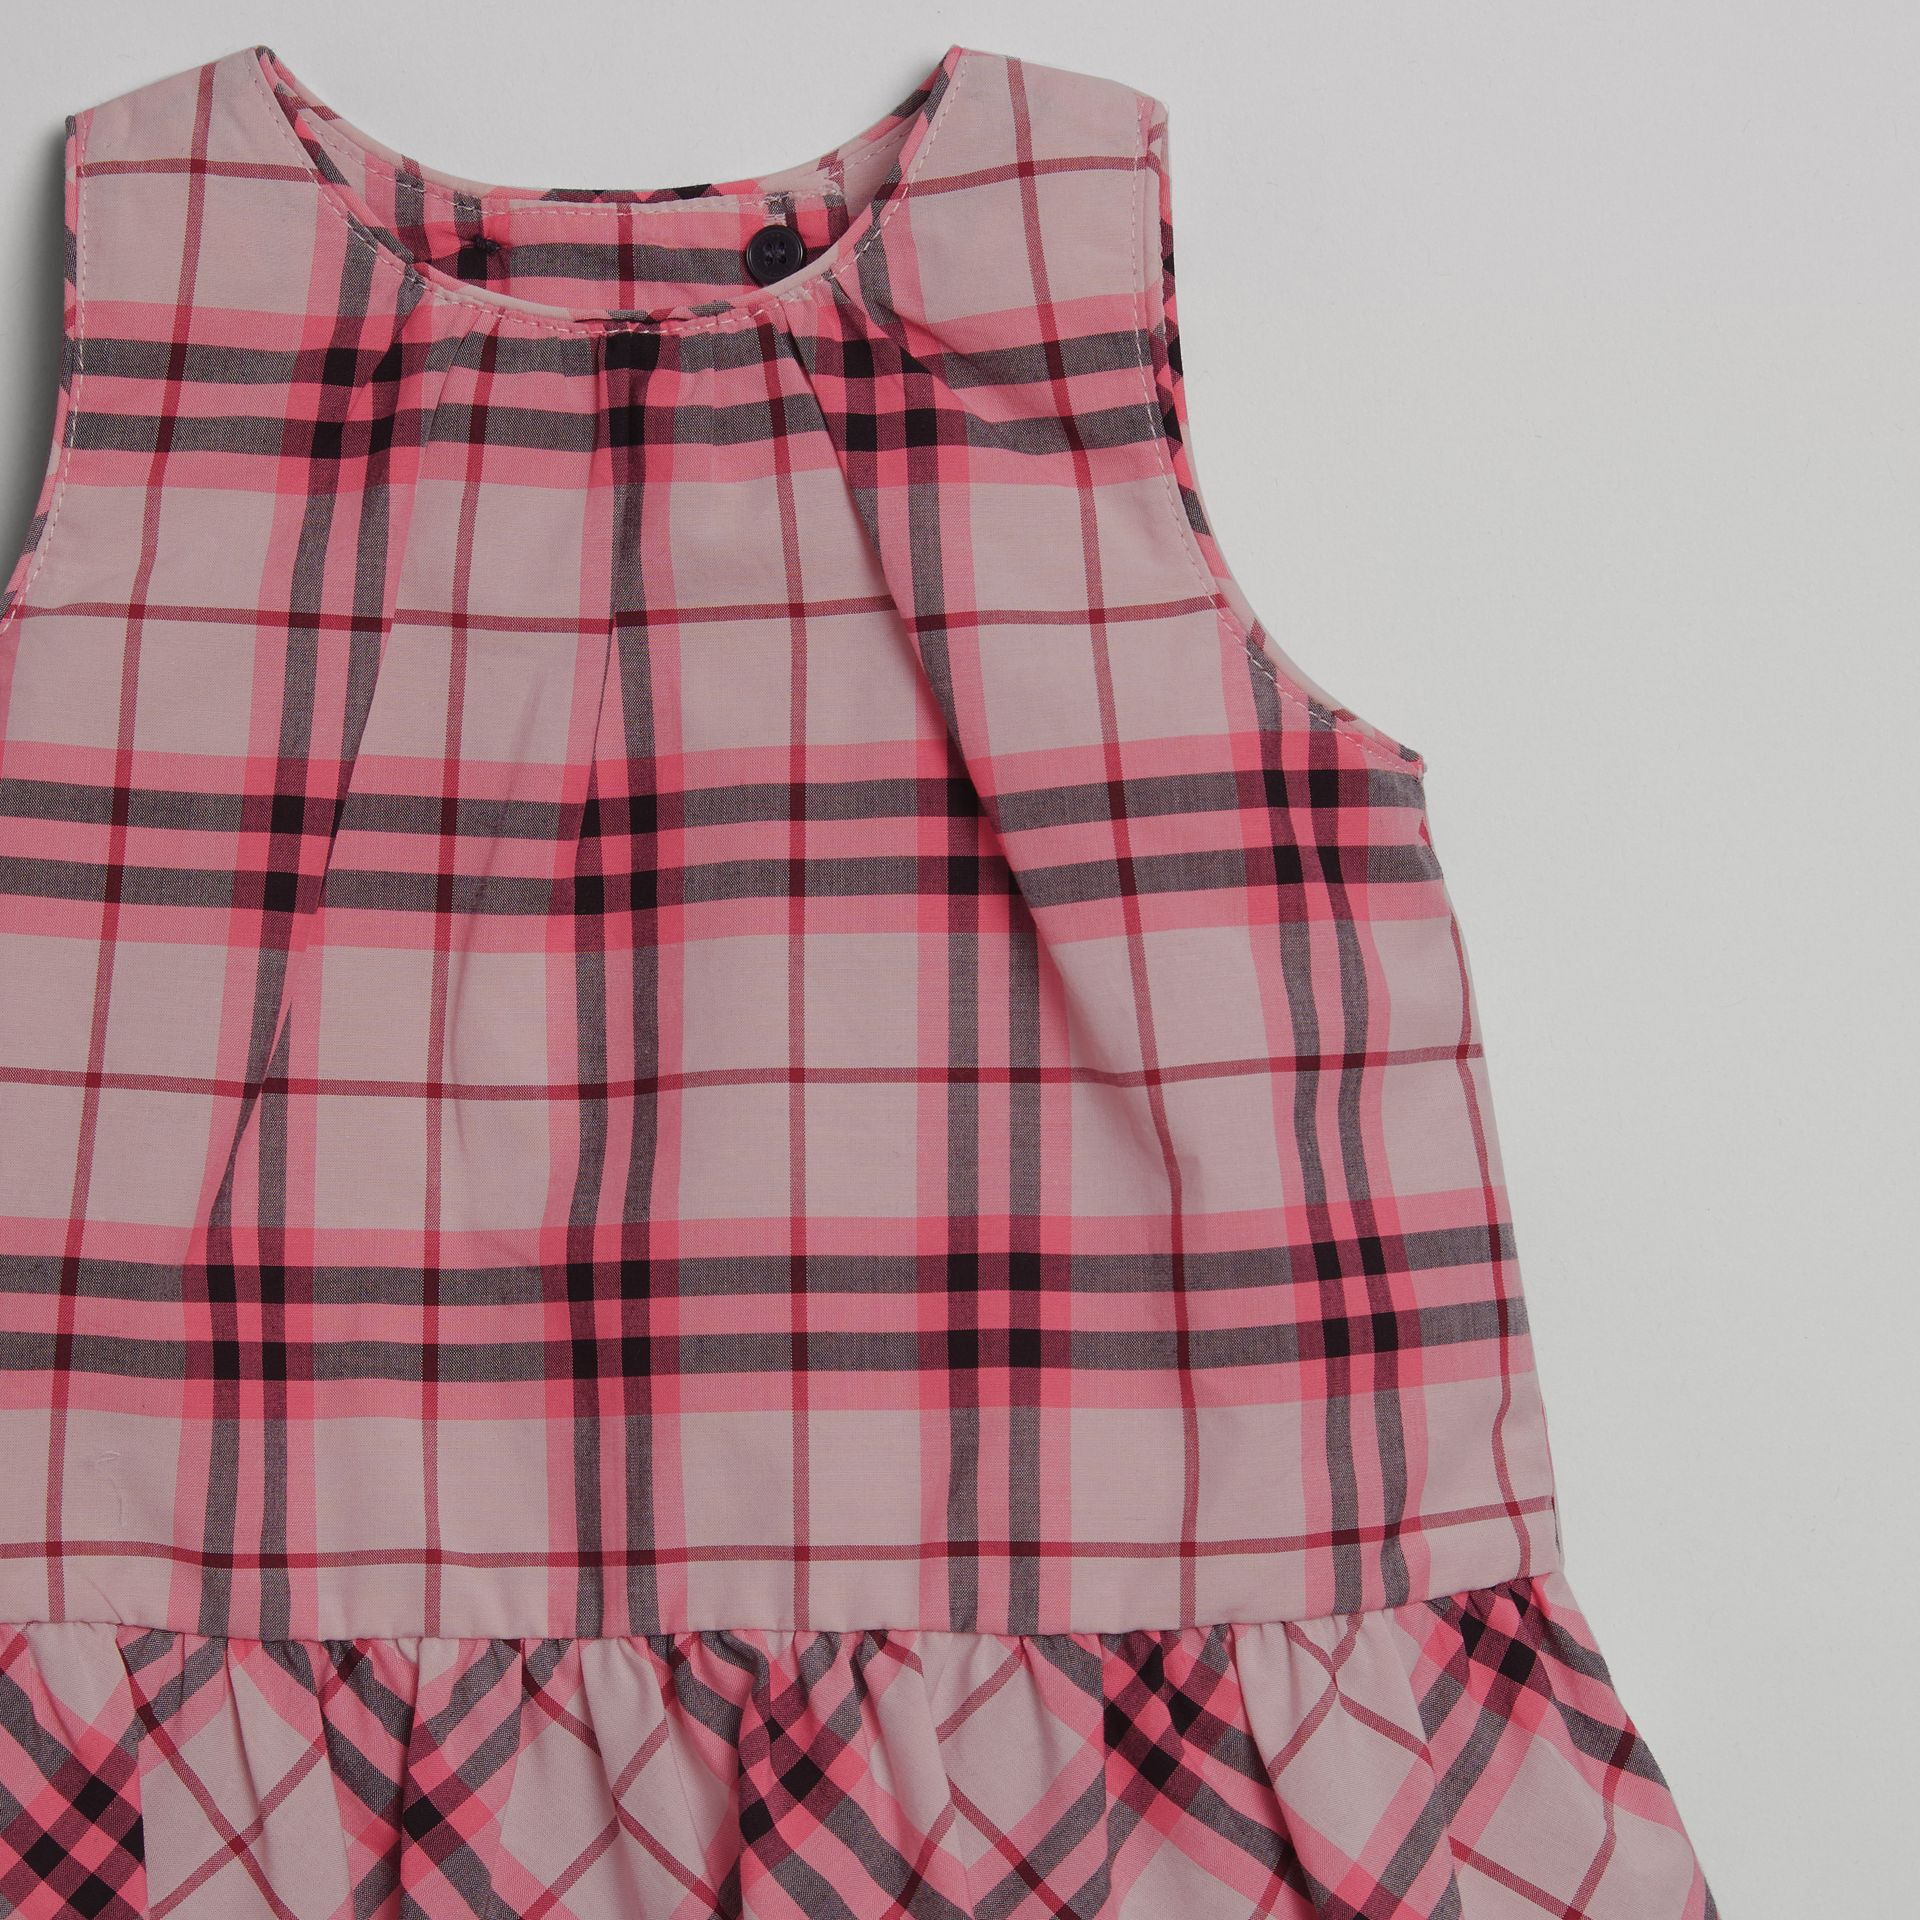 Haut en coton à motif check avec volants (Rose Vif) - Enfant | Burberry Canada - photo de la galerie 3